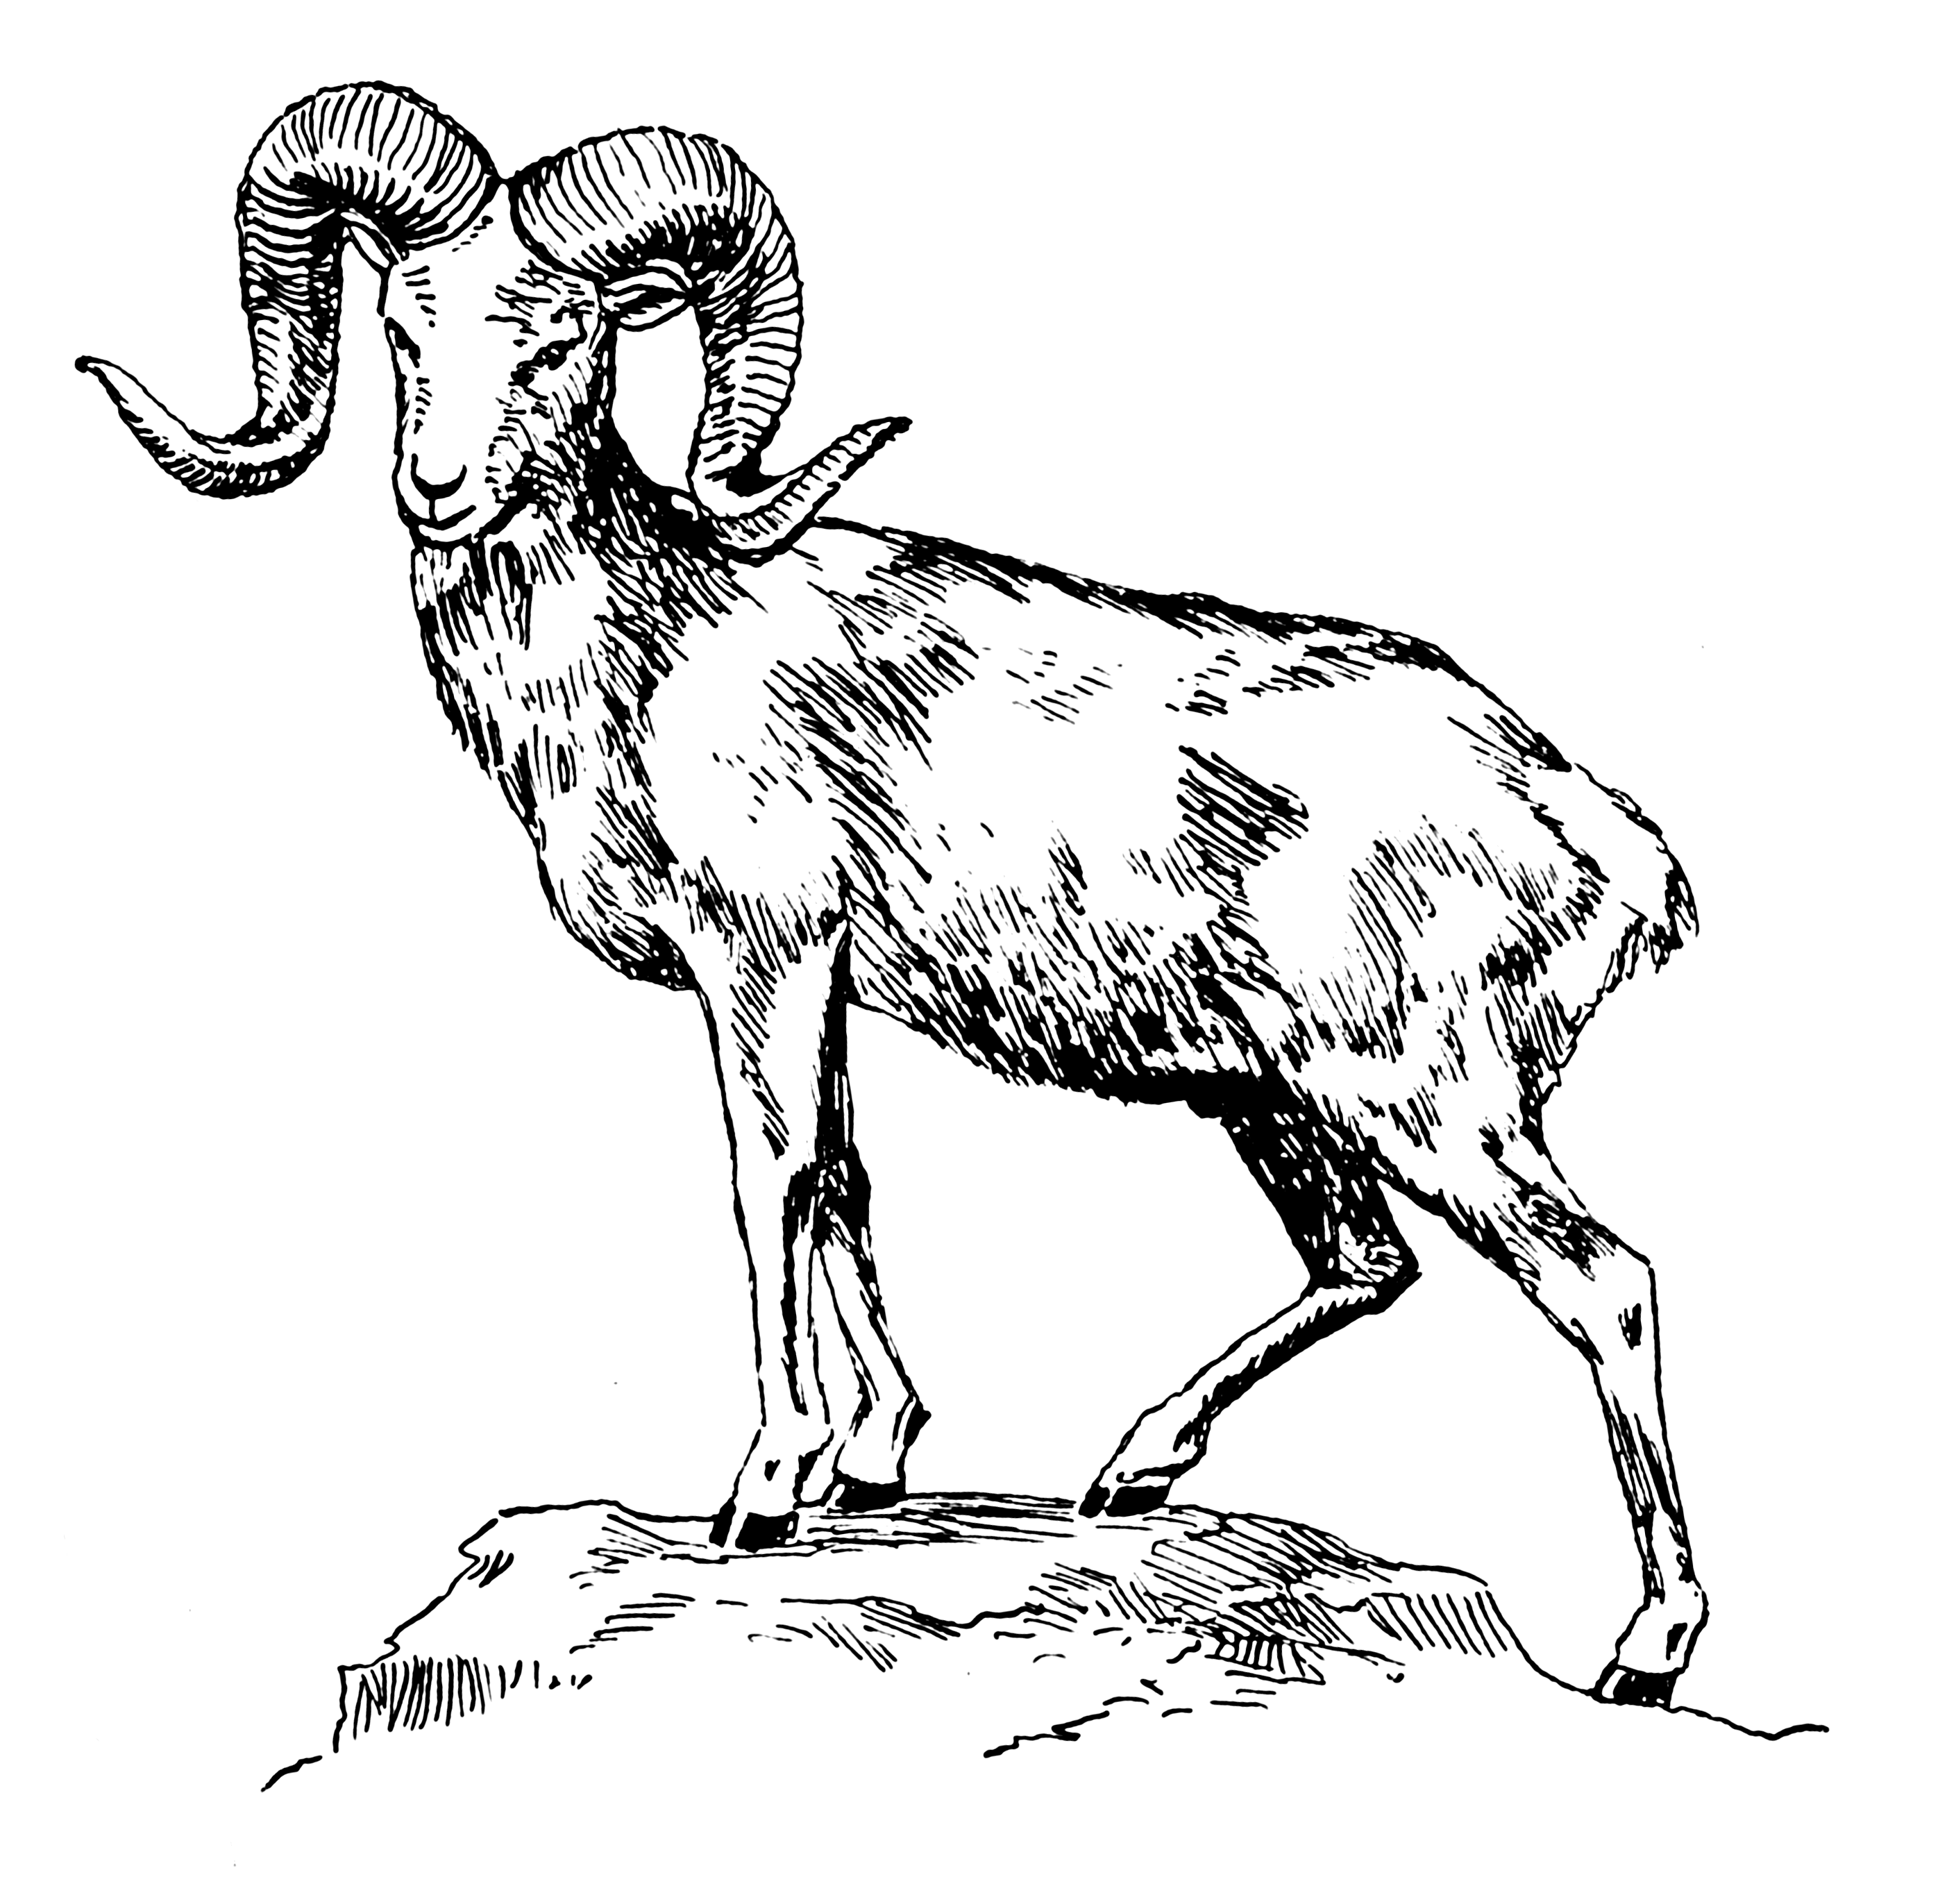 Co co coloring sheets to print of cows - Print Coloring Page And Book Big Horned Sheep Coloring Page For Kids Of All Ages Updated On Tuesday November